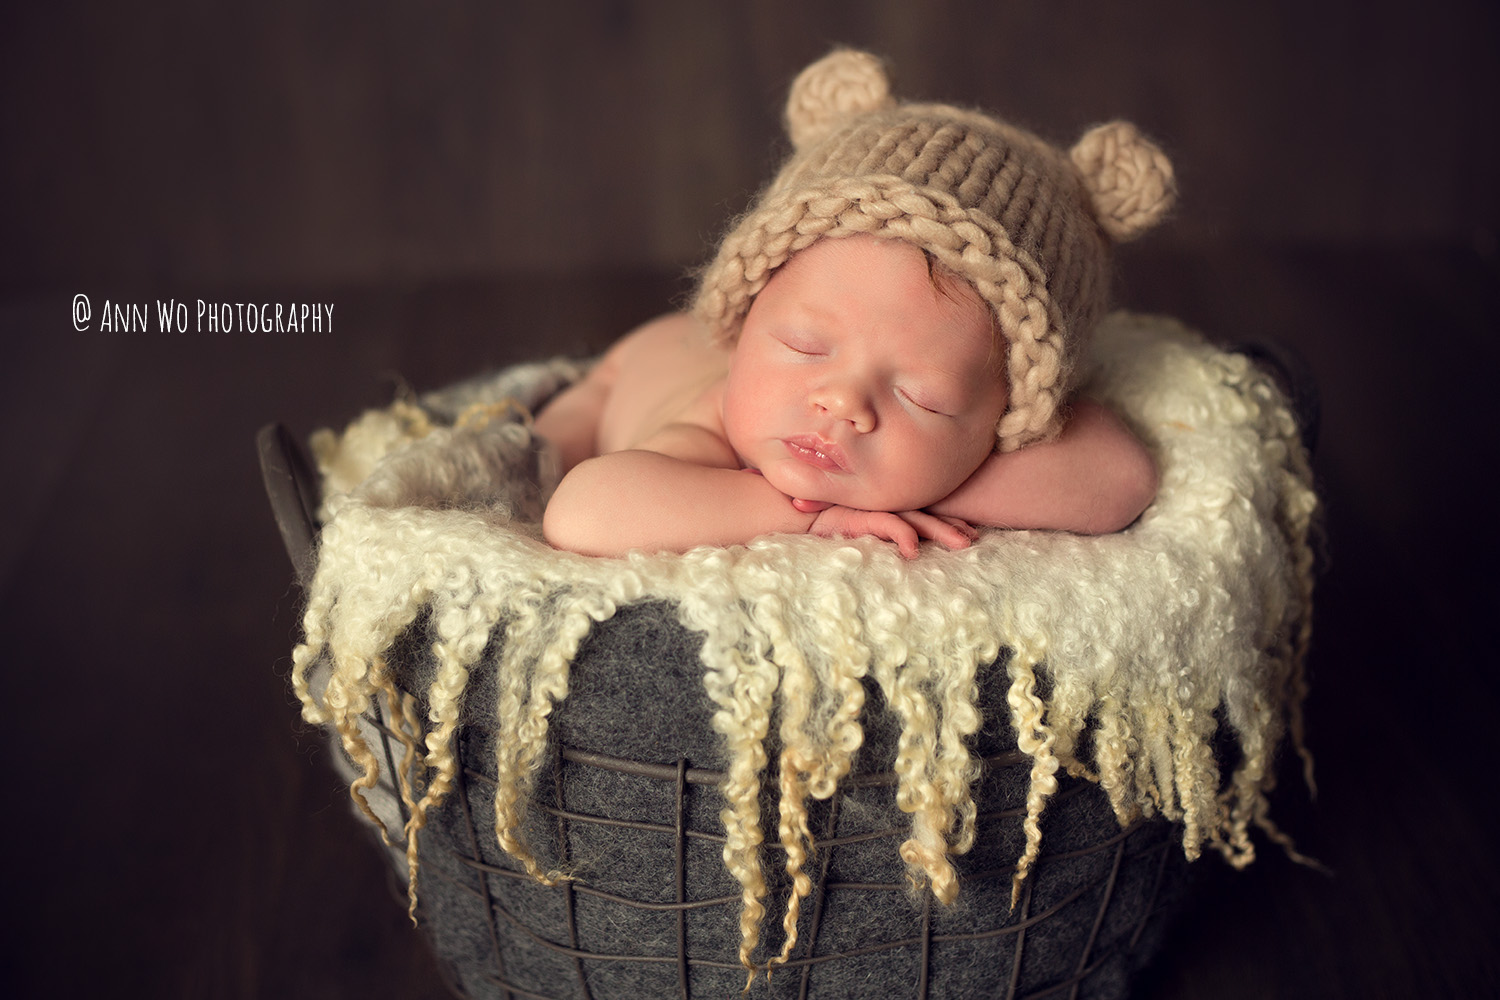 Newborn photography in London by Ann Wo bear hat metal basket